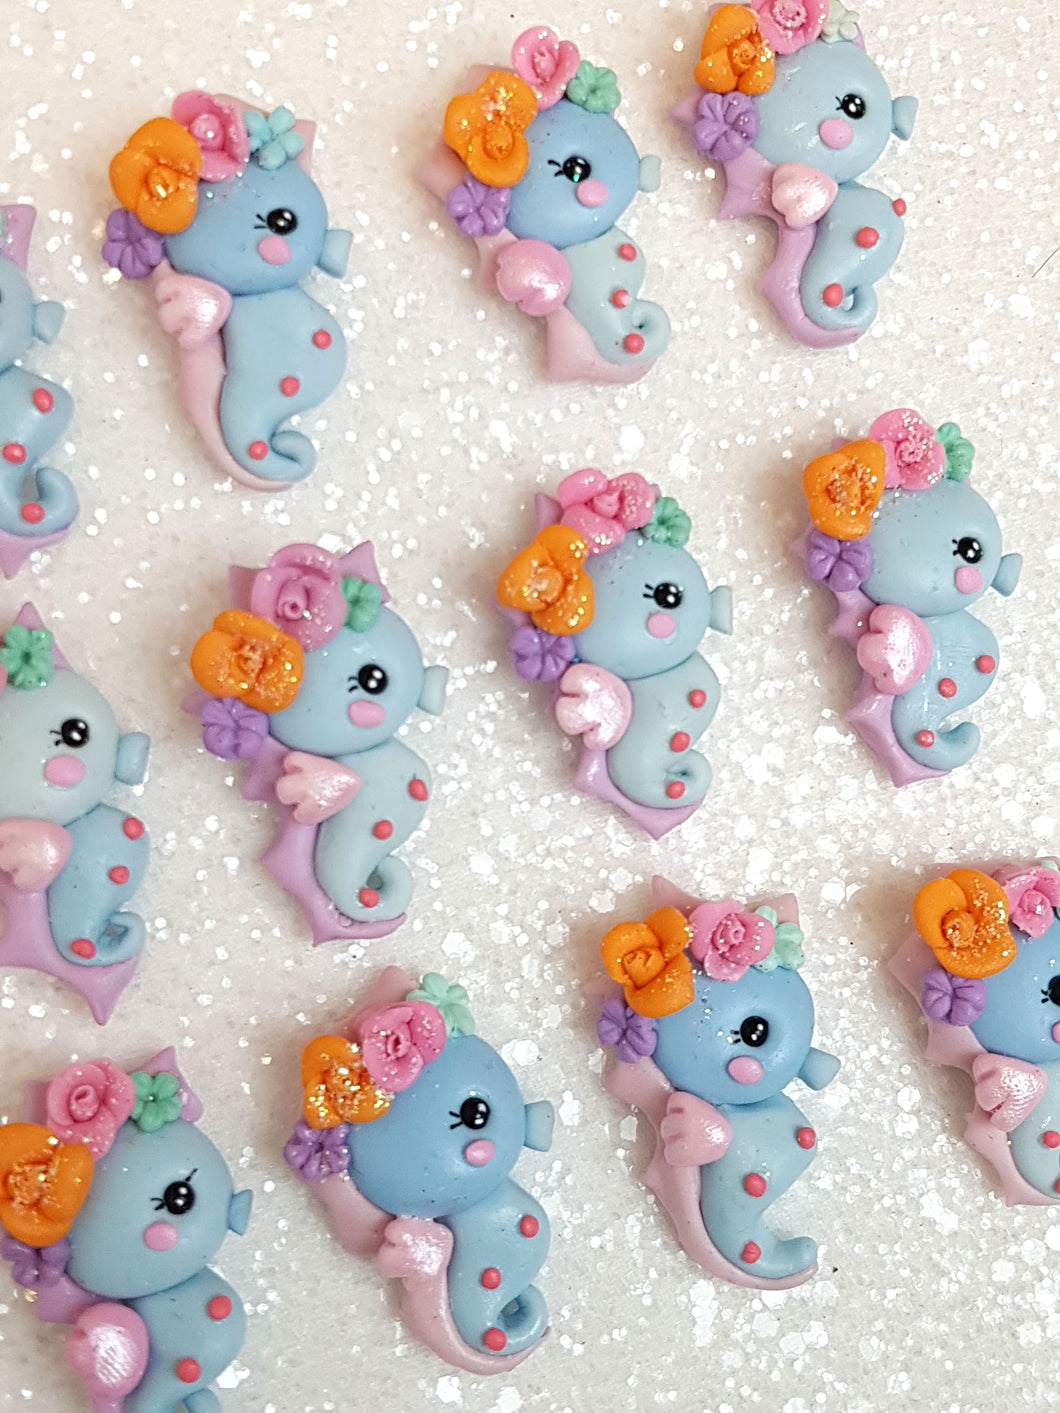 Clay Charm Embellishment NEW SEAHORSE BLUE sea SH - Crafty Mood